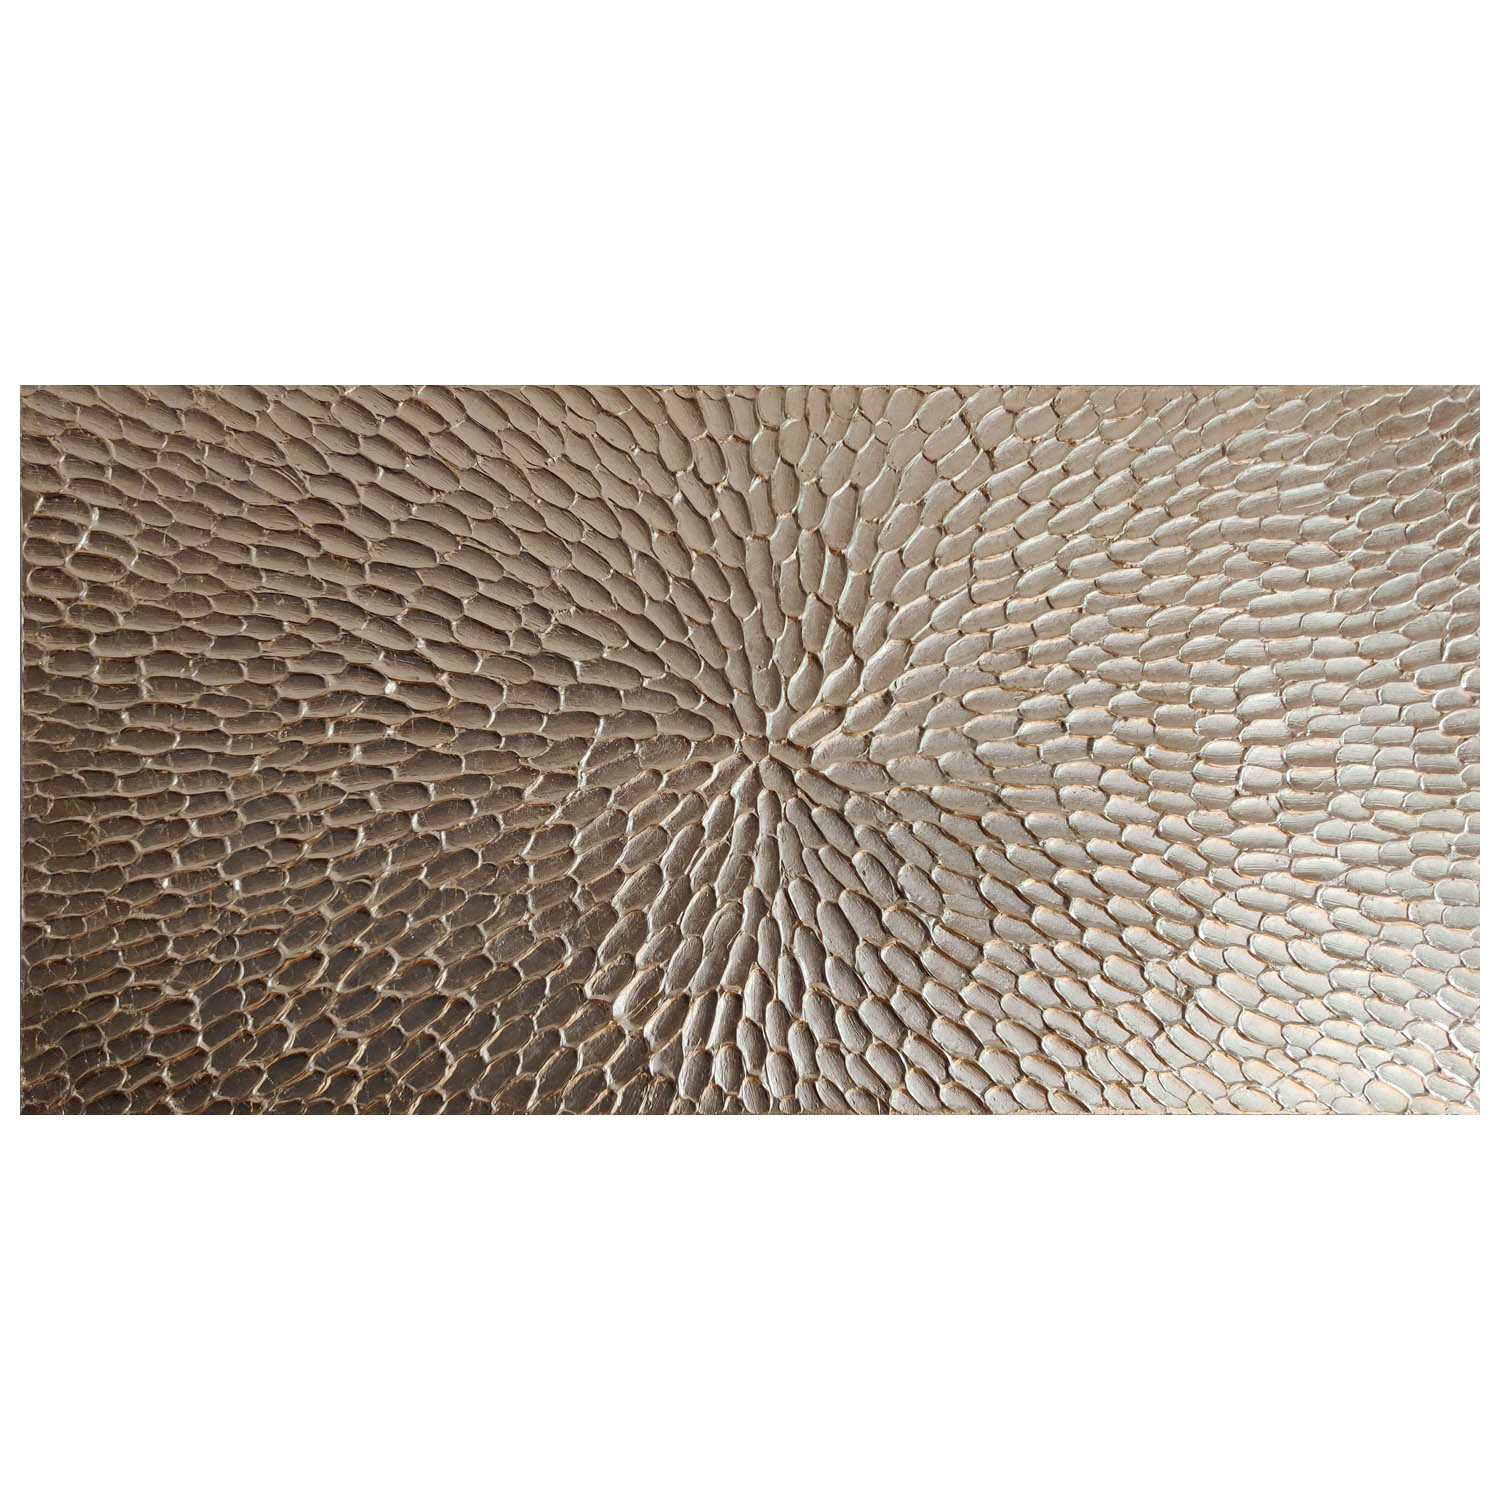 Palak Patel, Gold Feathers<br> Heavy Structure Gel and Gold Leaf, 1000mmx500mm, £275<br>